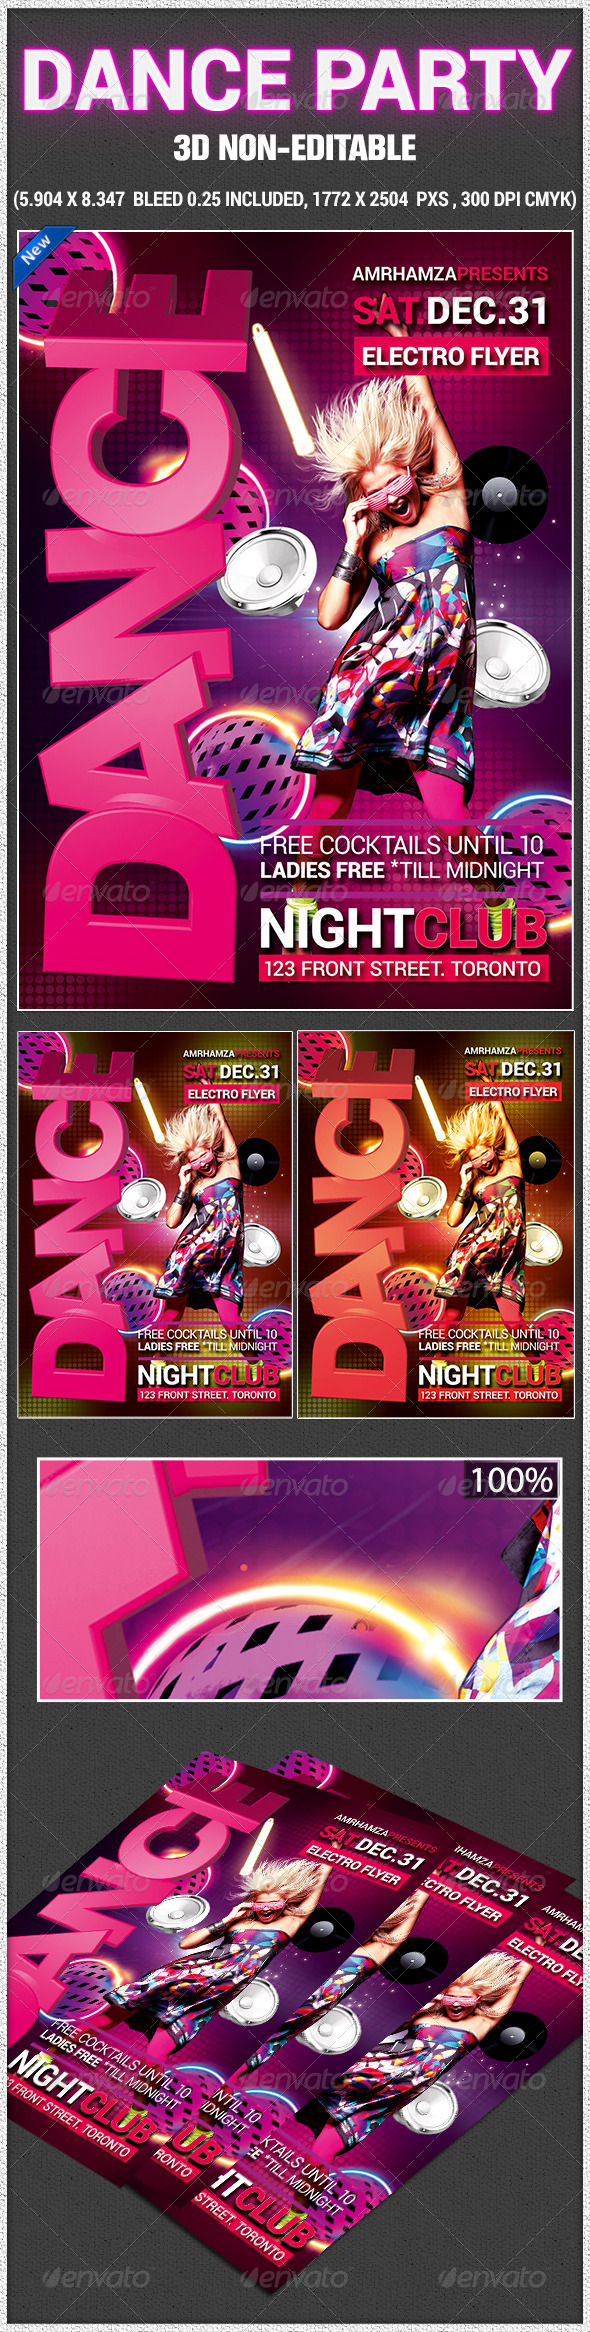 Glow Dance Party Poster - Clubs & Parties Events